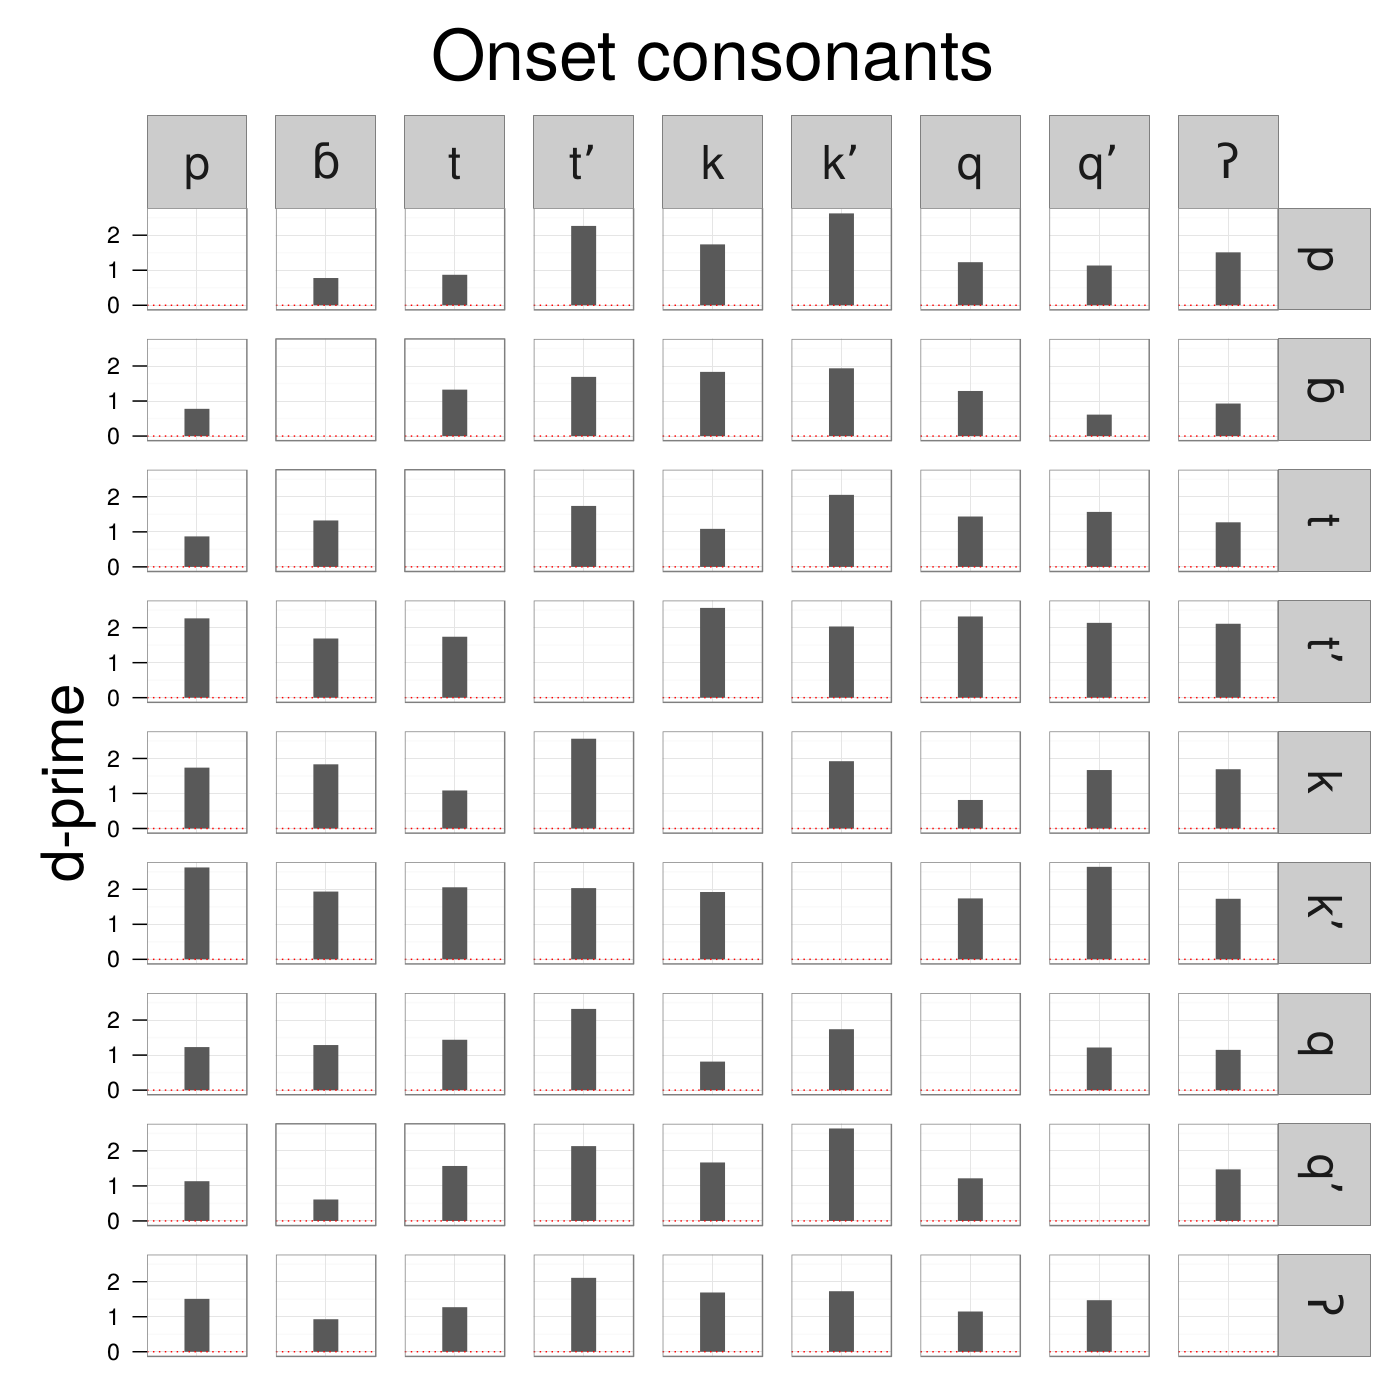 DPrime of Onset Consonants in Kaqchikel